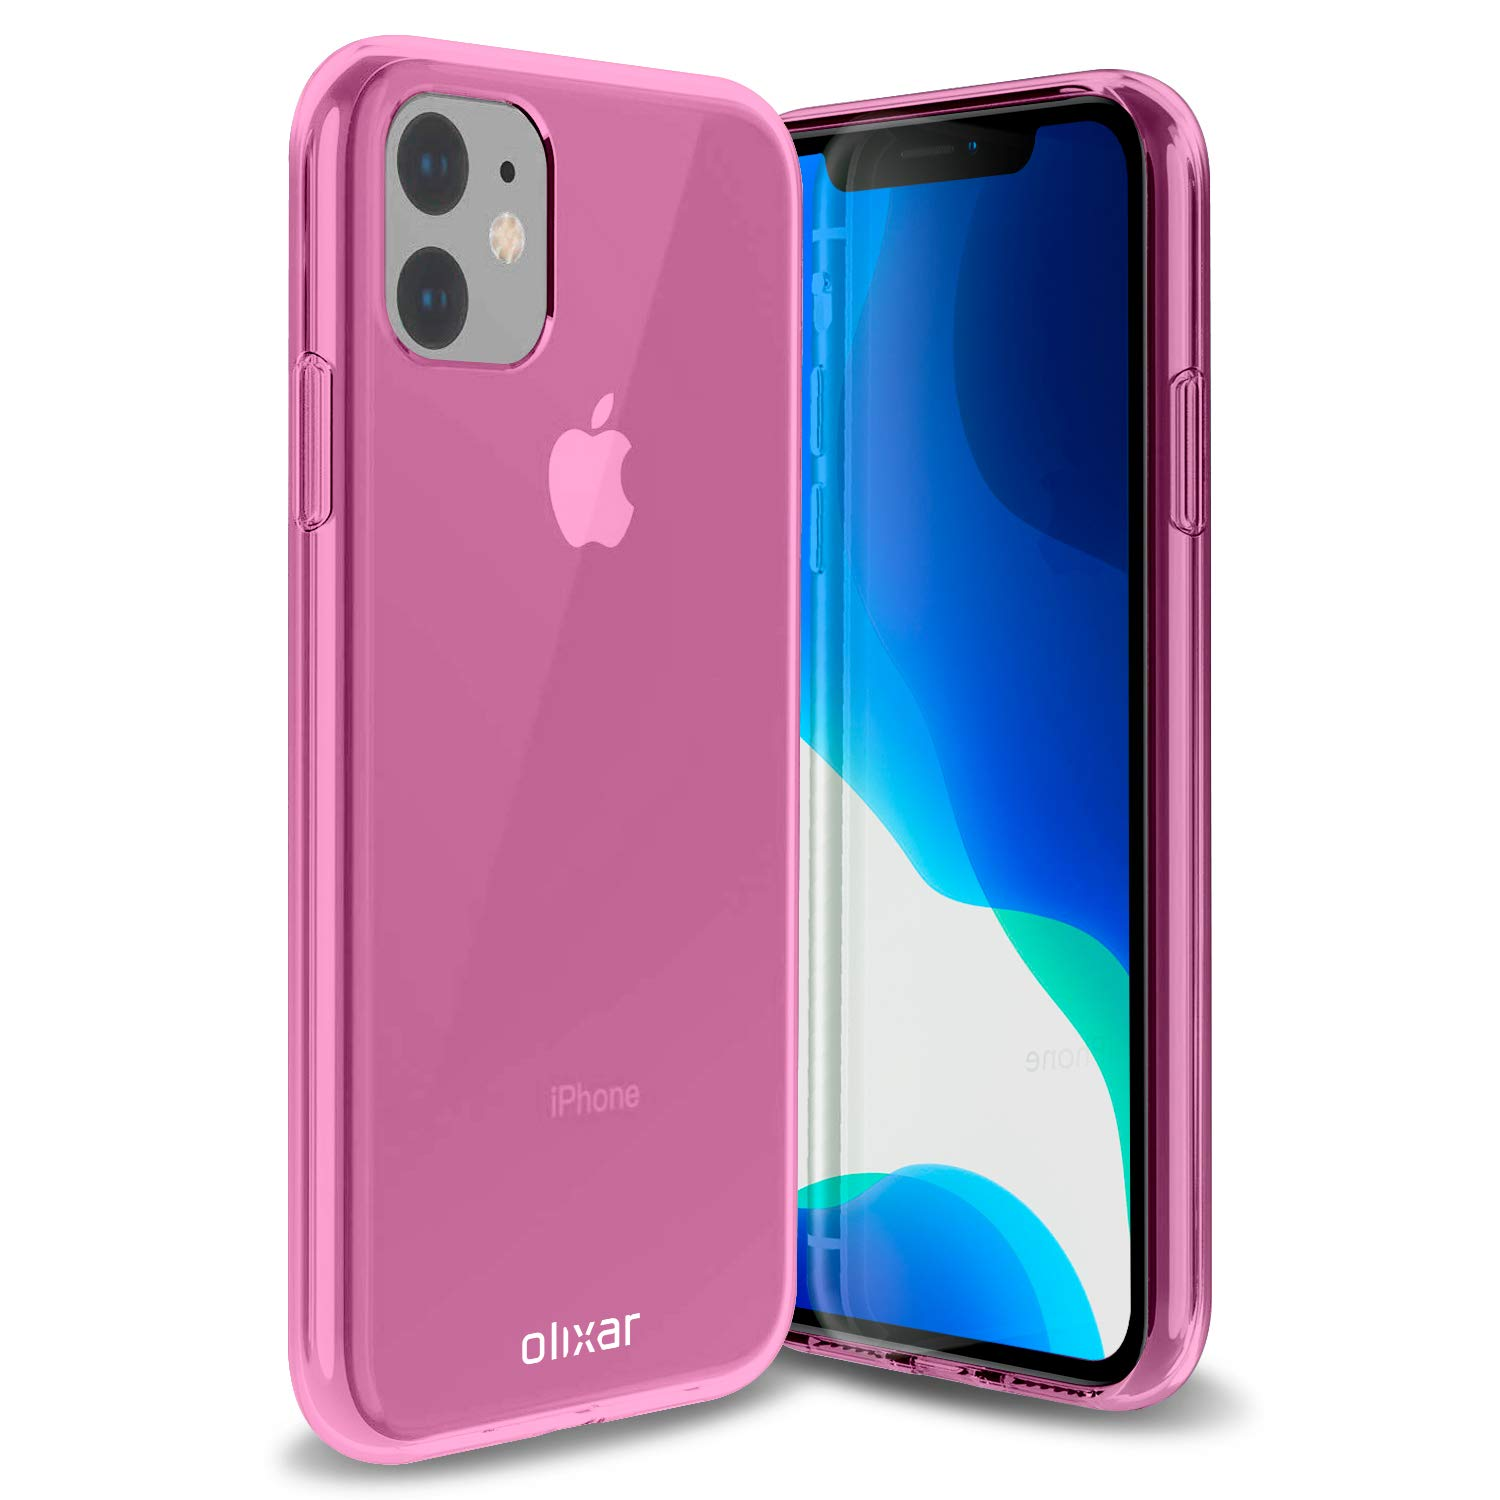 Olixar for iPhone 11 Gel Case Pink - Flexible Slim Silicone TPU - Thin Protective Cover - Wireless Charging Compatible - FlexiShield - Pink